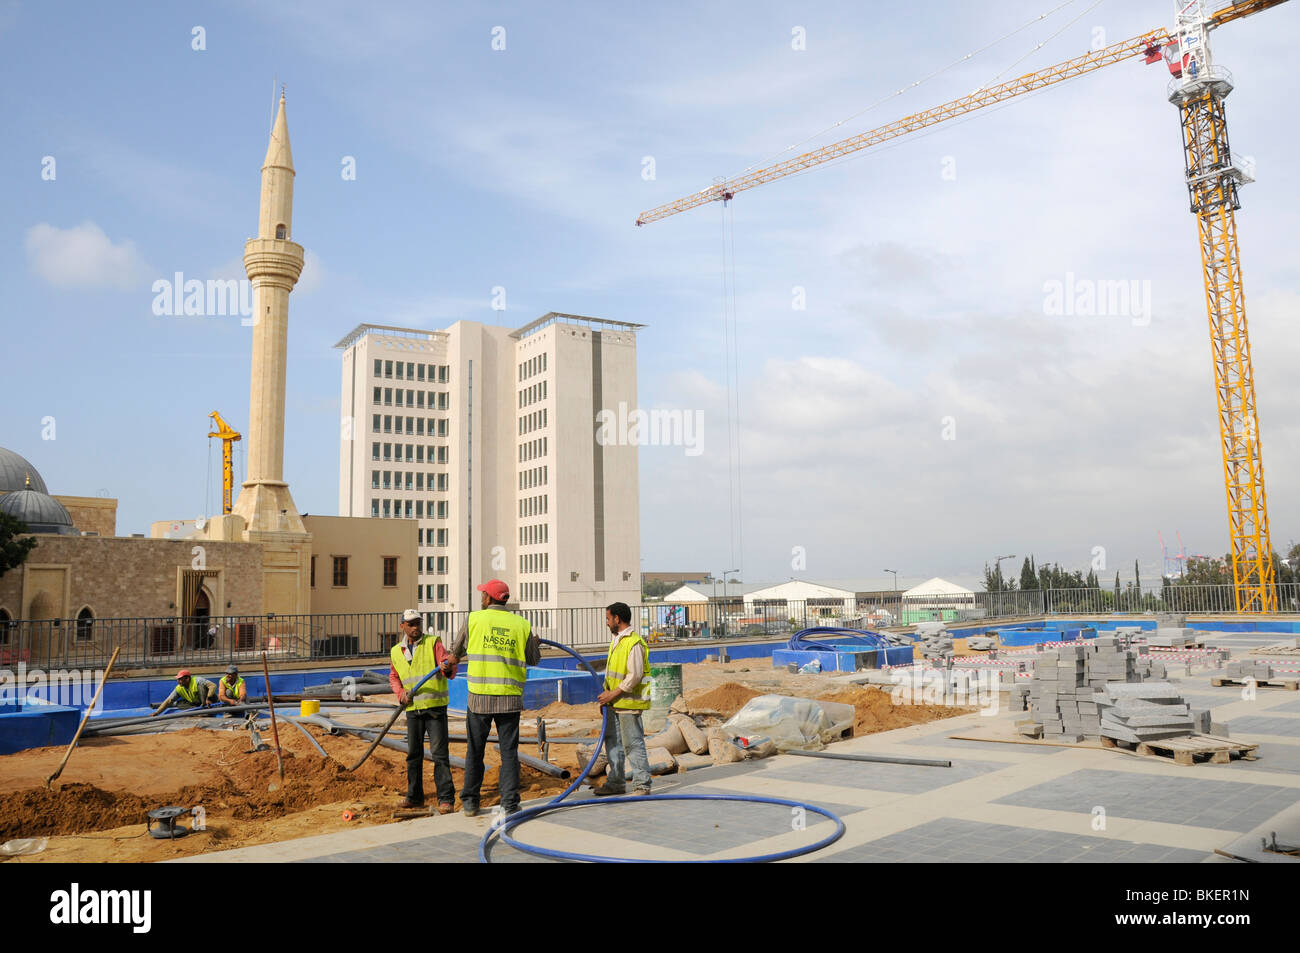 LEBANON. RECONSTRUCTION OF DOWNTOWN BEIRUT BY SOLIDERE CONSORTIUM SET UP BY LATE RAFIK HARIRI - Stock Image